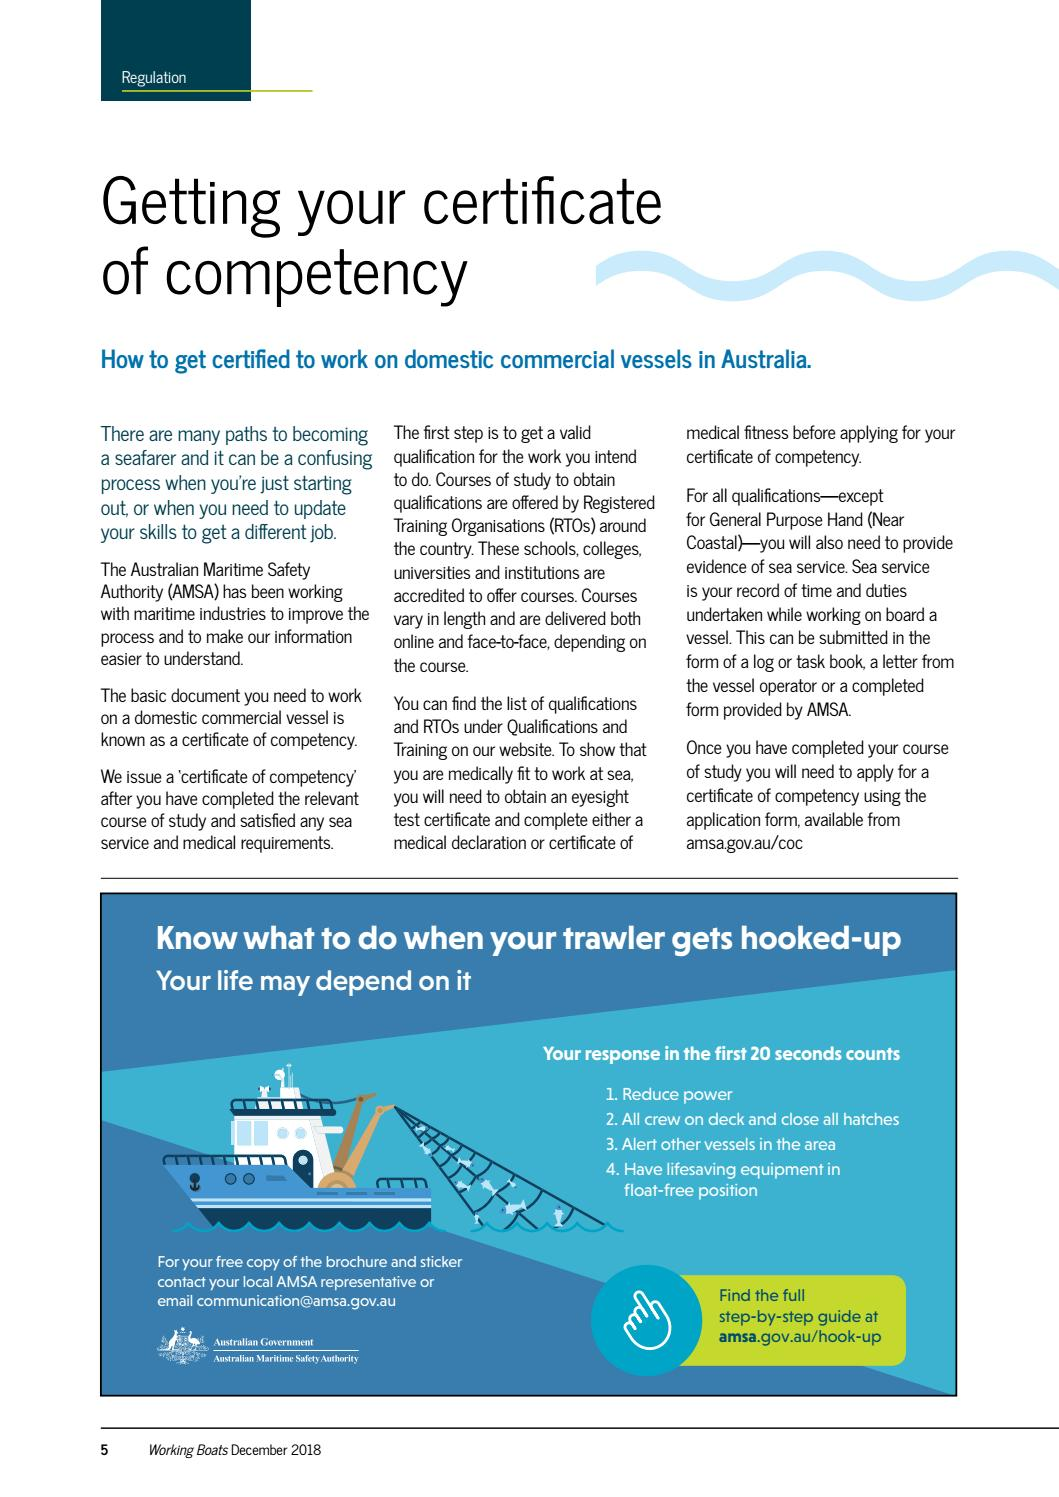 Working Boats issue 14 by Australian Maritime Safety